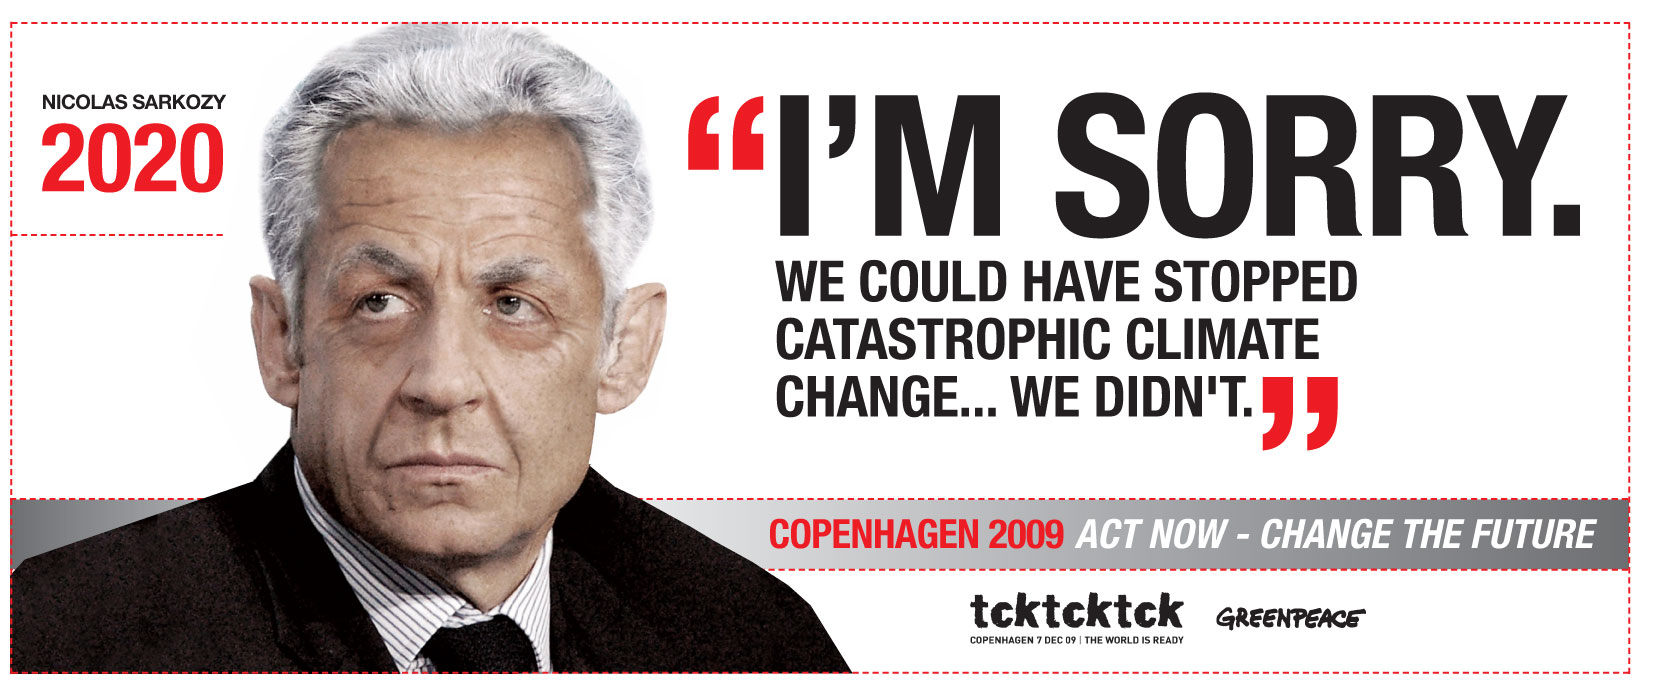 Greenpeace-sorry-sarkozy in